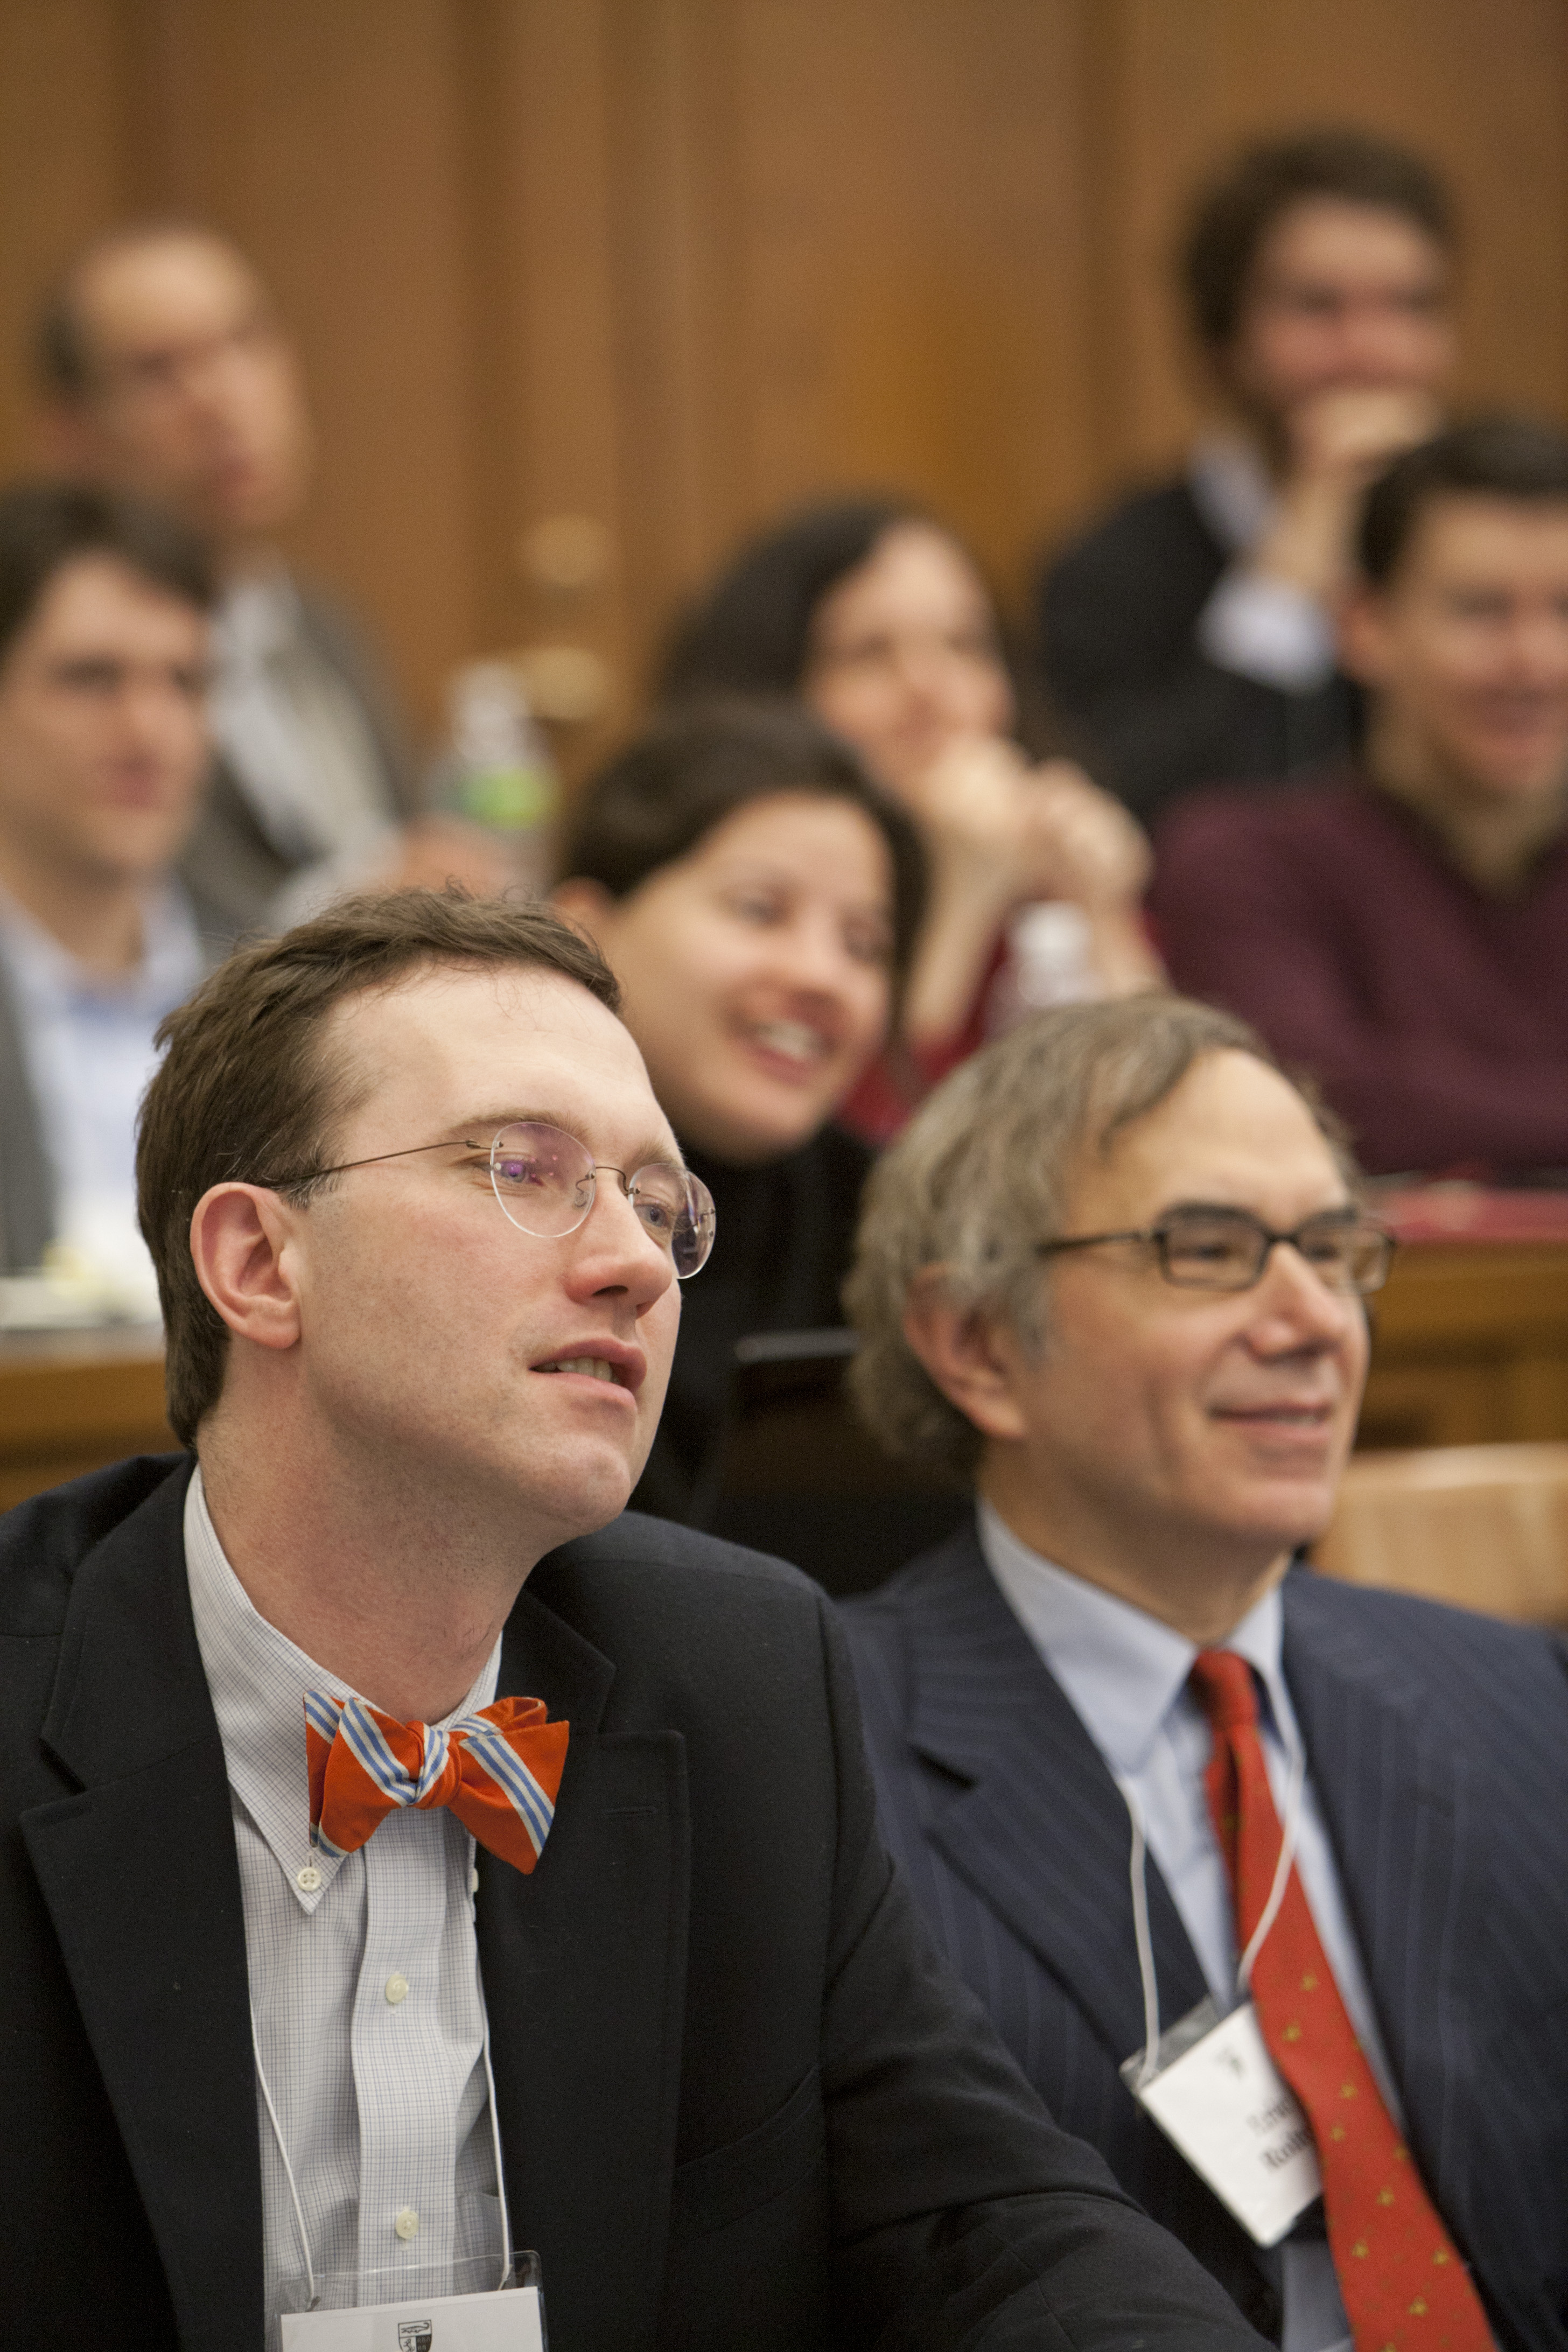 George Raine '99 and Boston U. Law Lecturer Eric Roiter